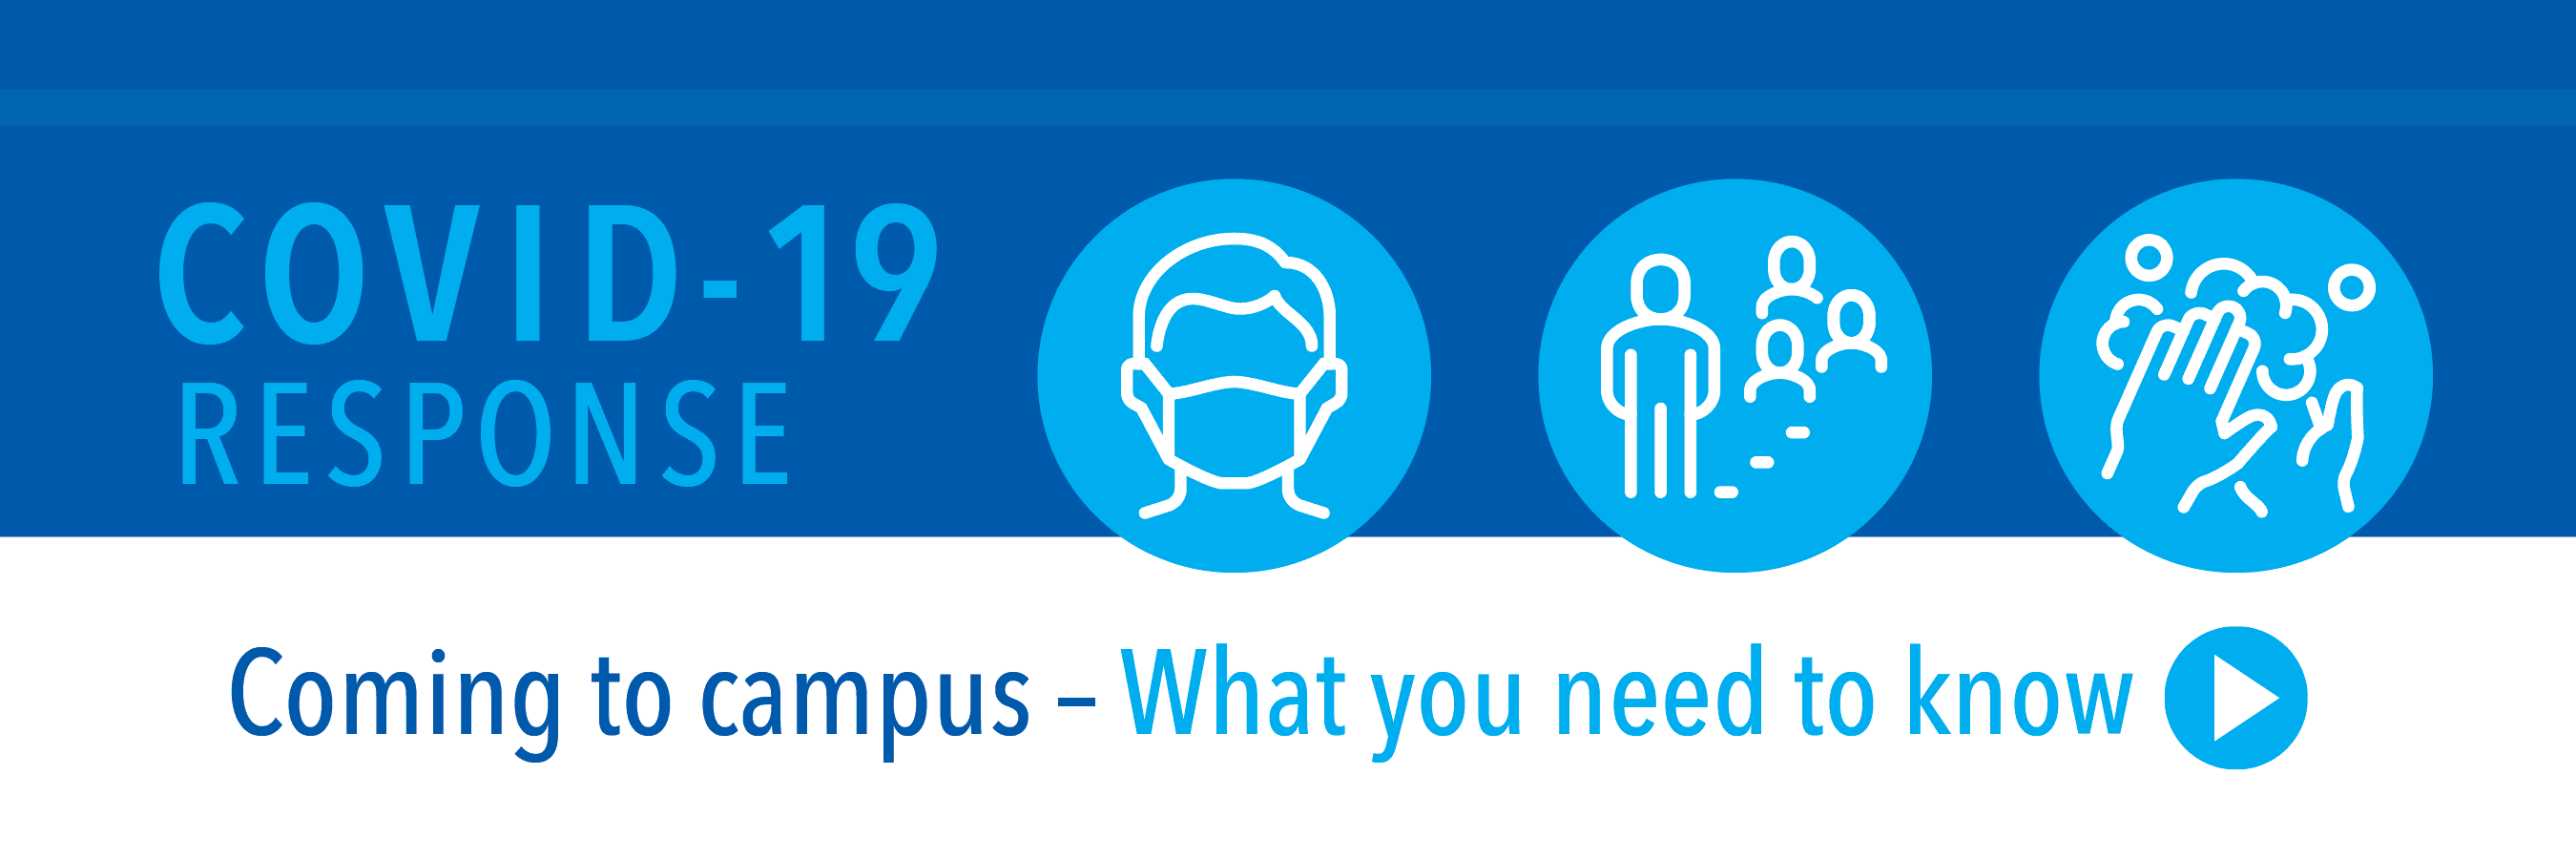 COVID-19 Response. Coming to campus - what you need to know.